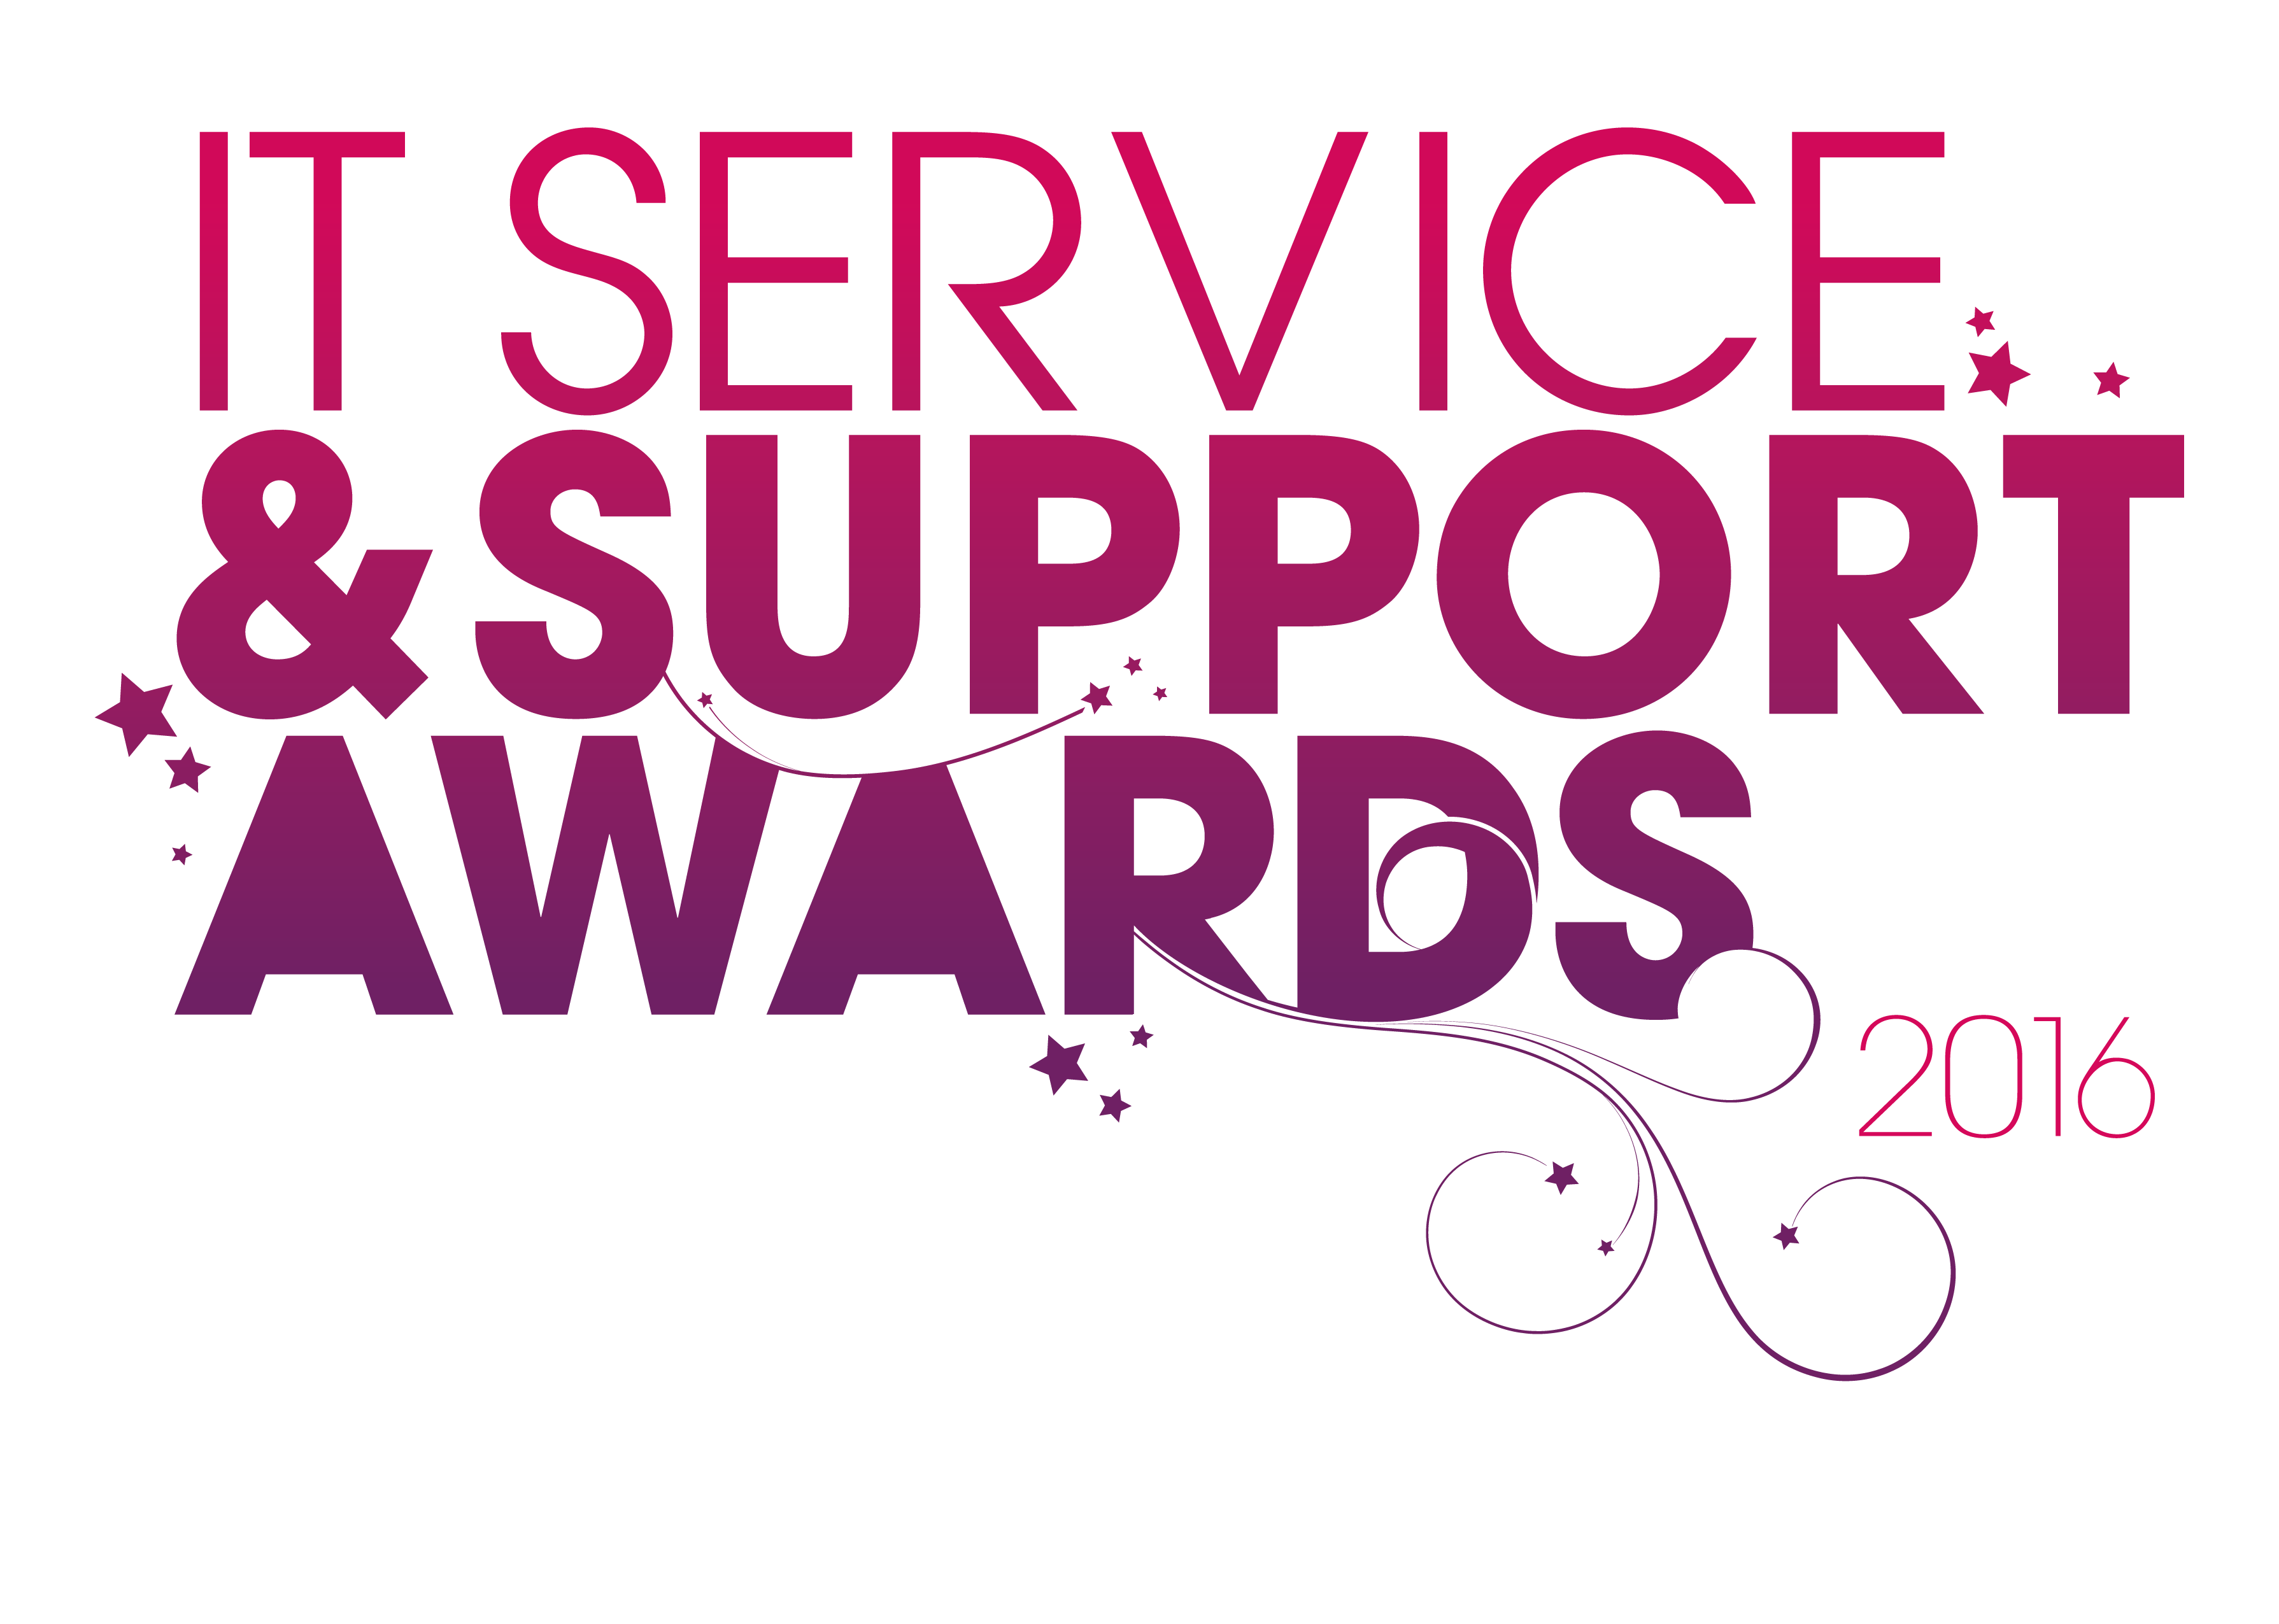 IT Support Service Awards SDI